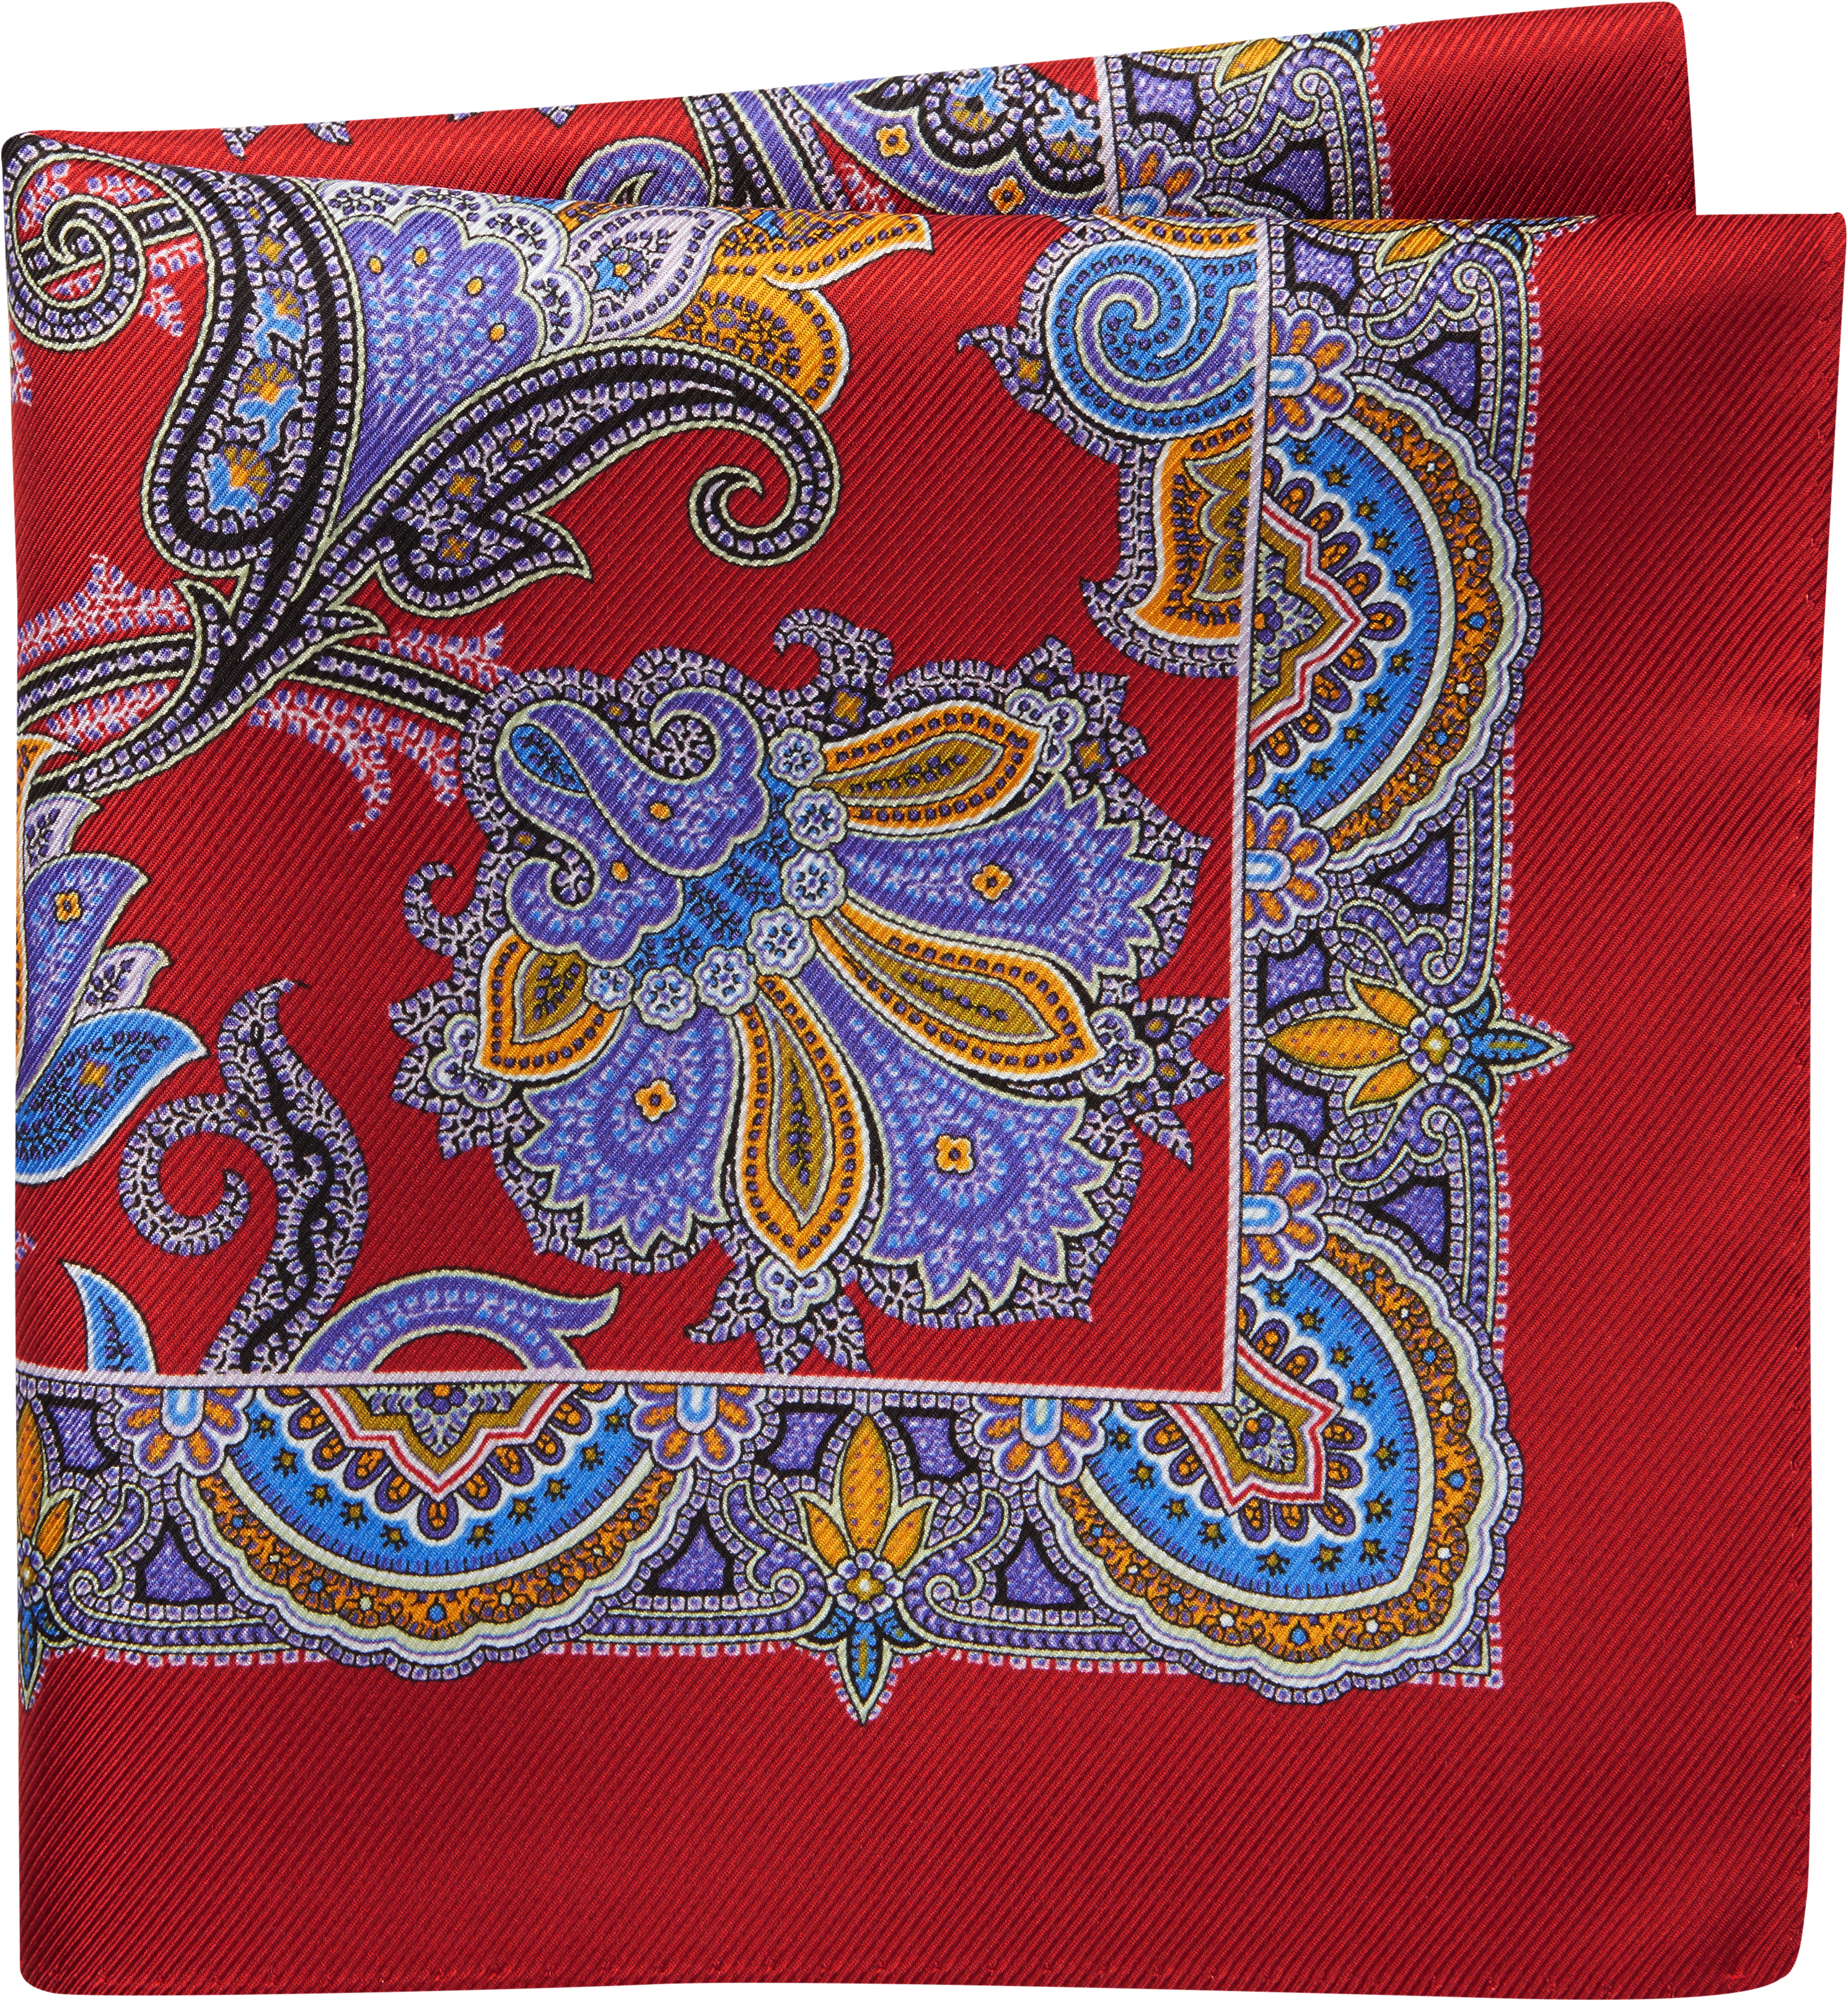 1888f80eed258 Jos. A. Bank Paisley Pocket Square CLEARANCE - All Clearance | Jos A ...